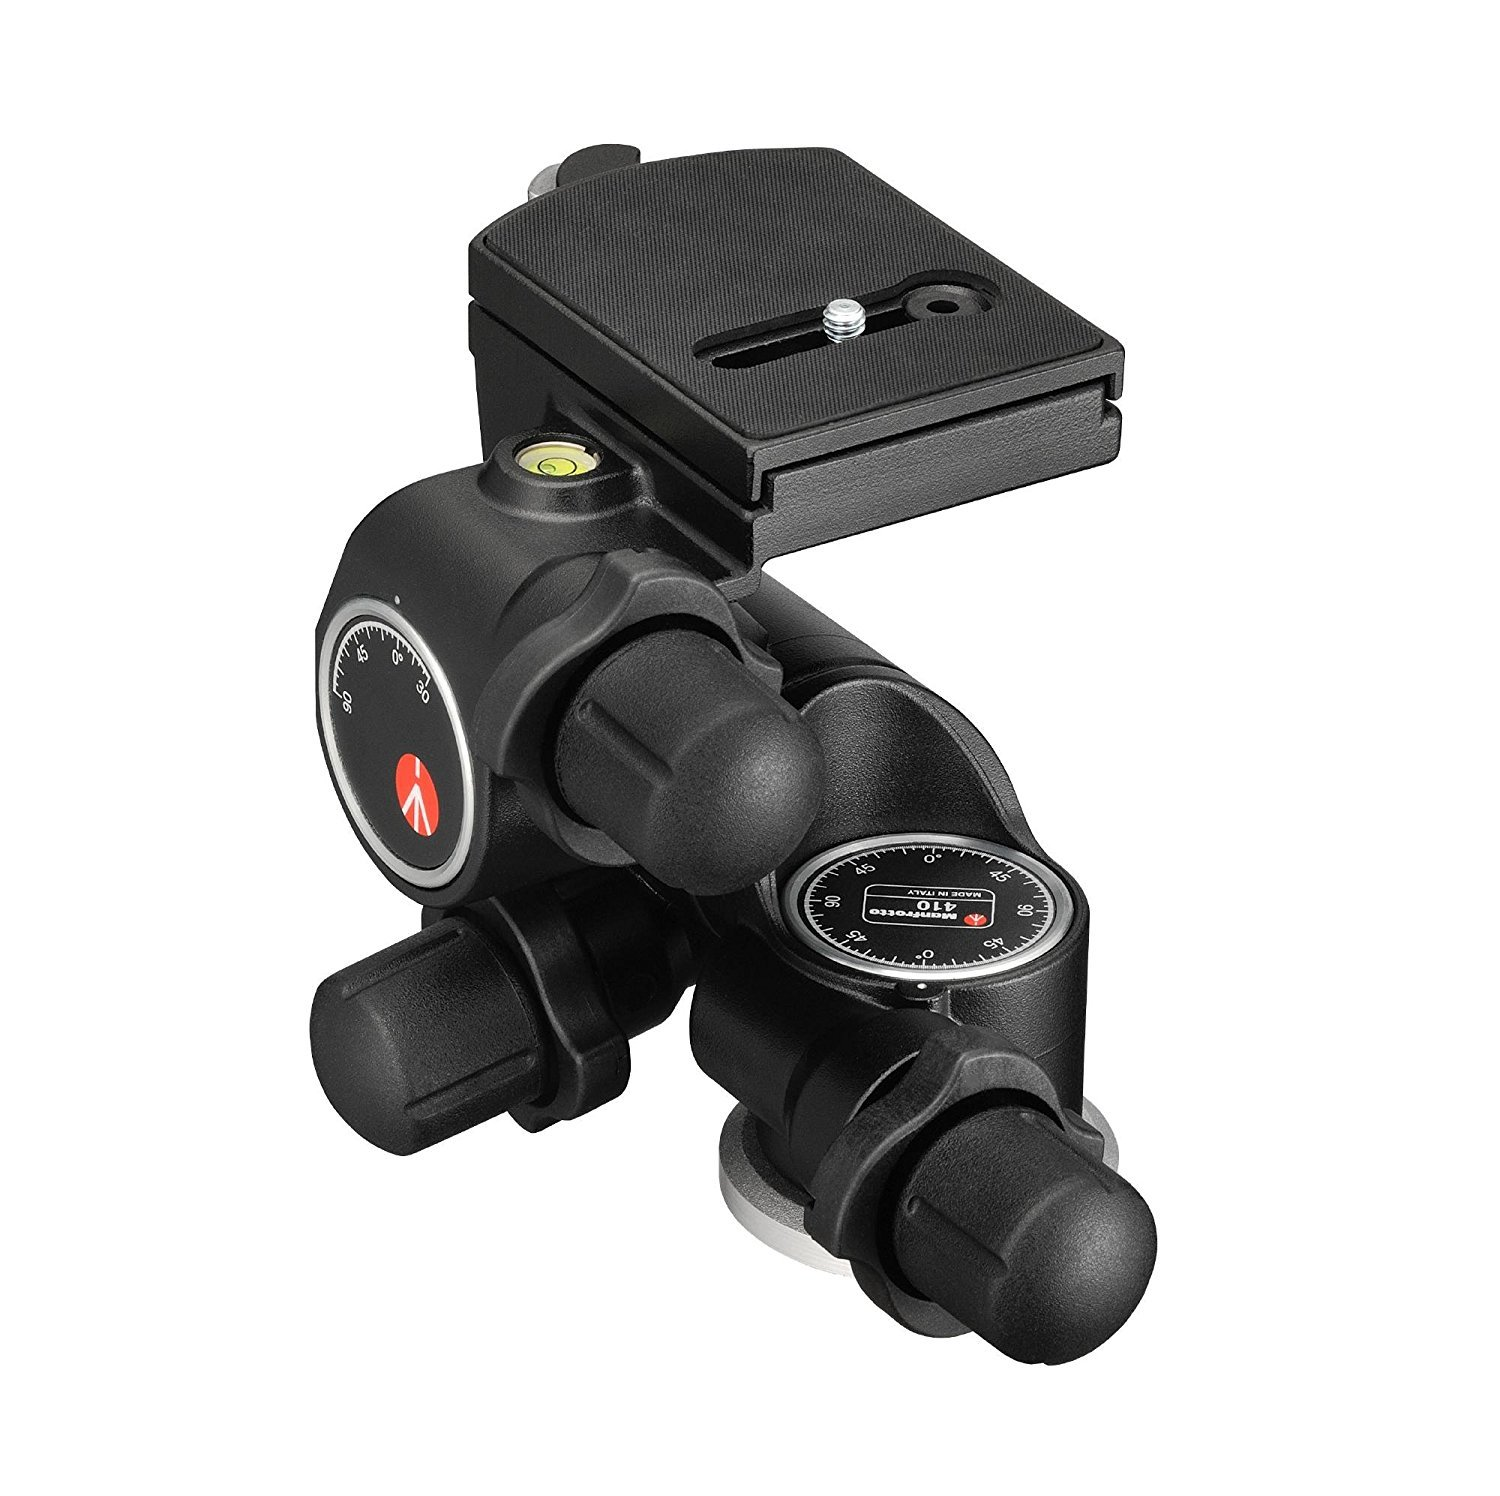 Manfrotto 410 Junior Geared Tripod Head with Quick Release and a Bonus Ivation Quick Release Plate by Manfrotto (Image #6)